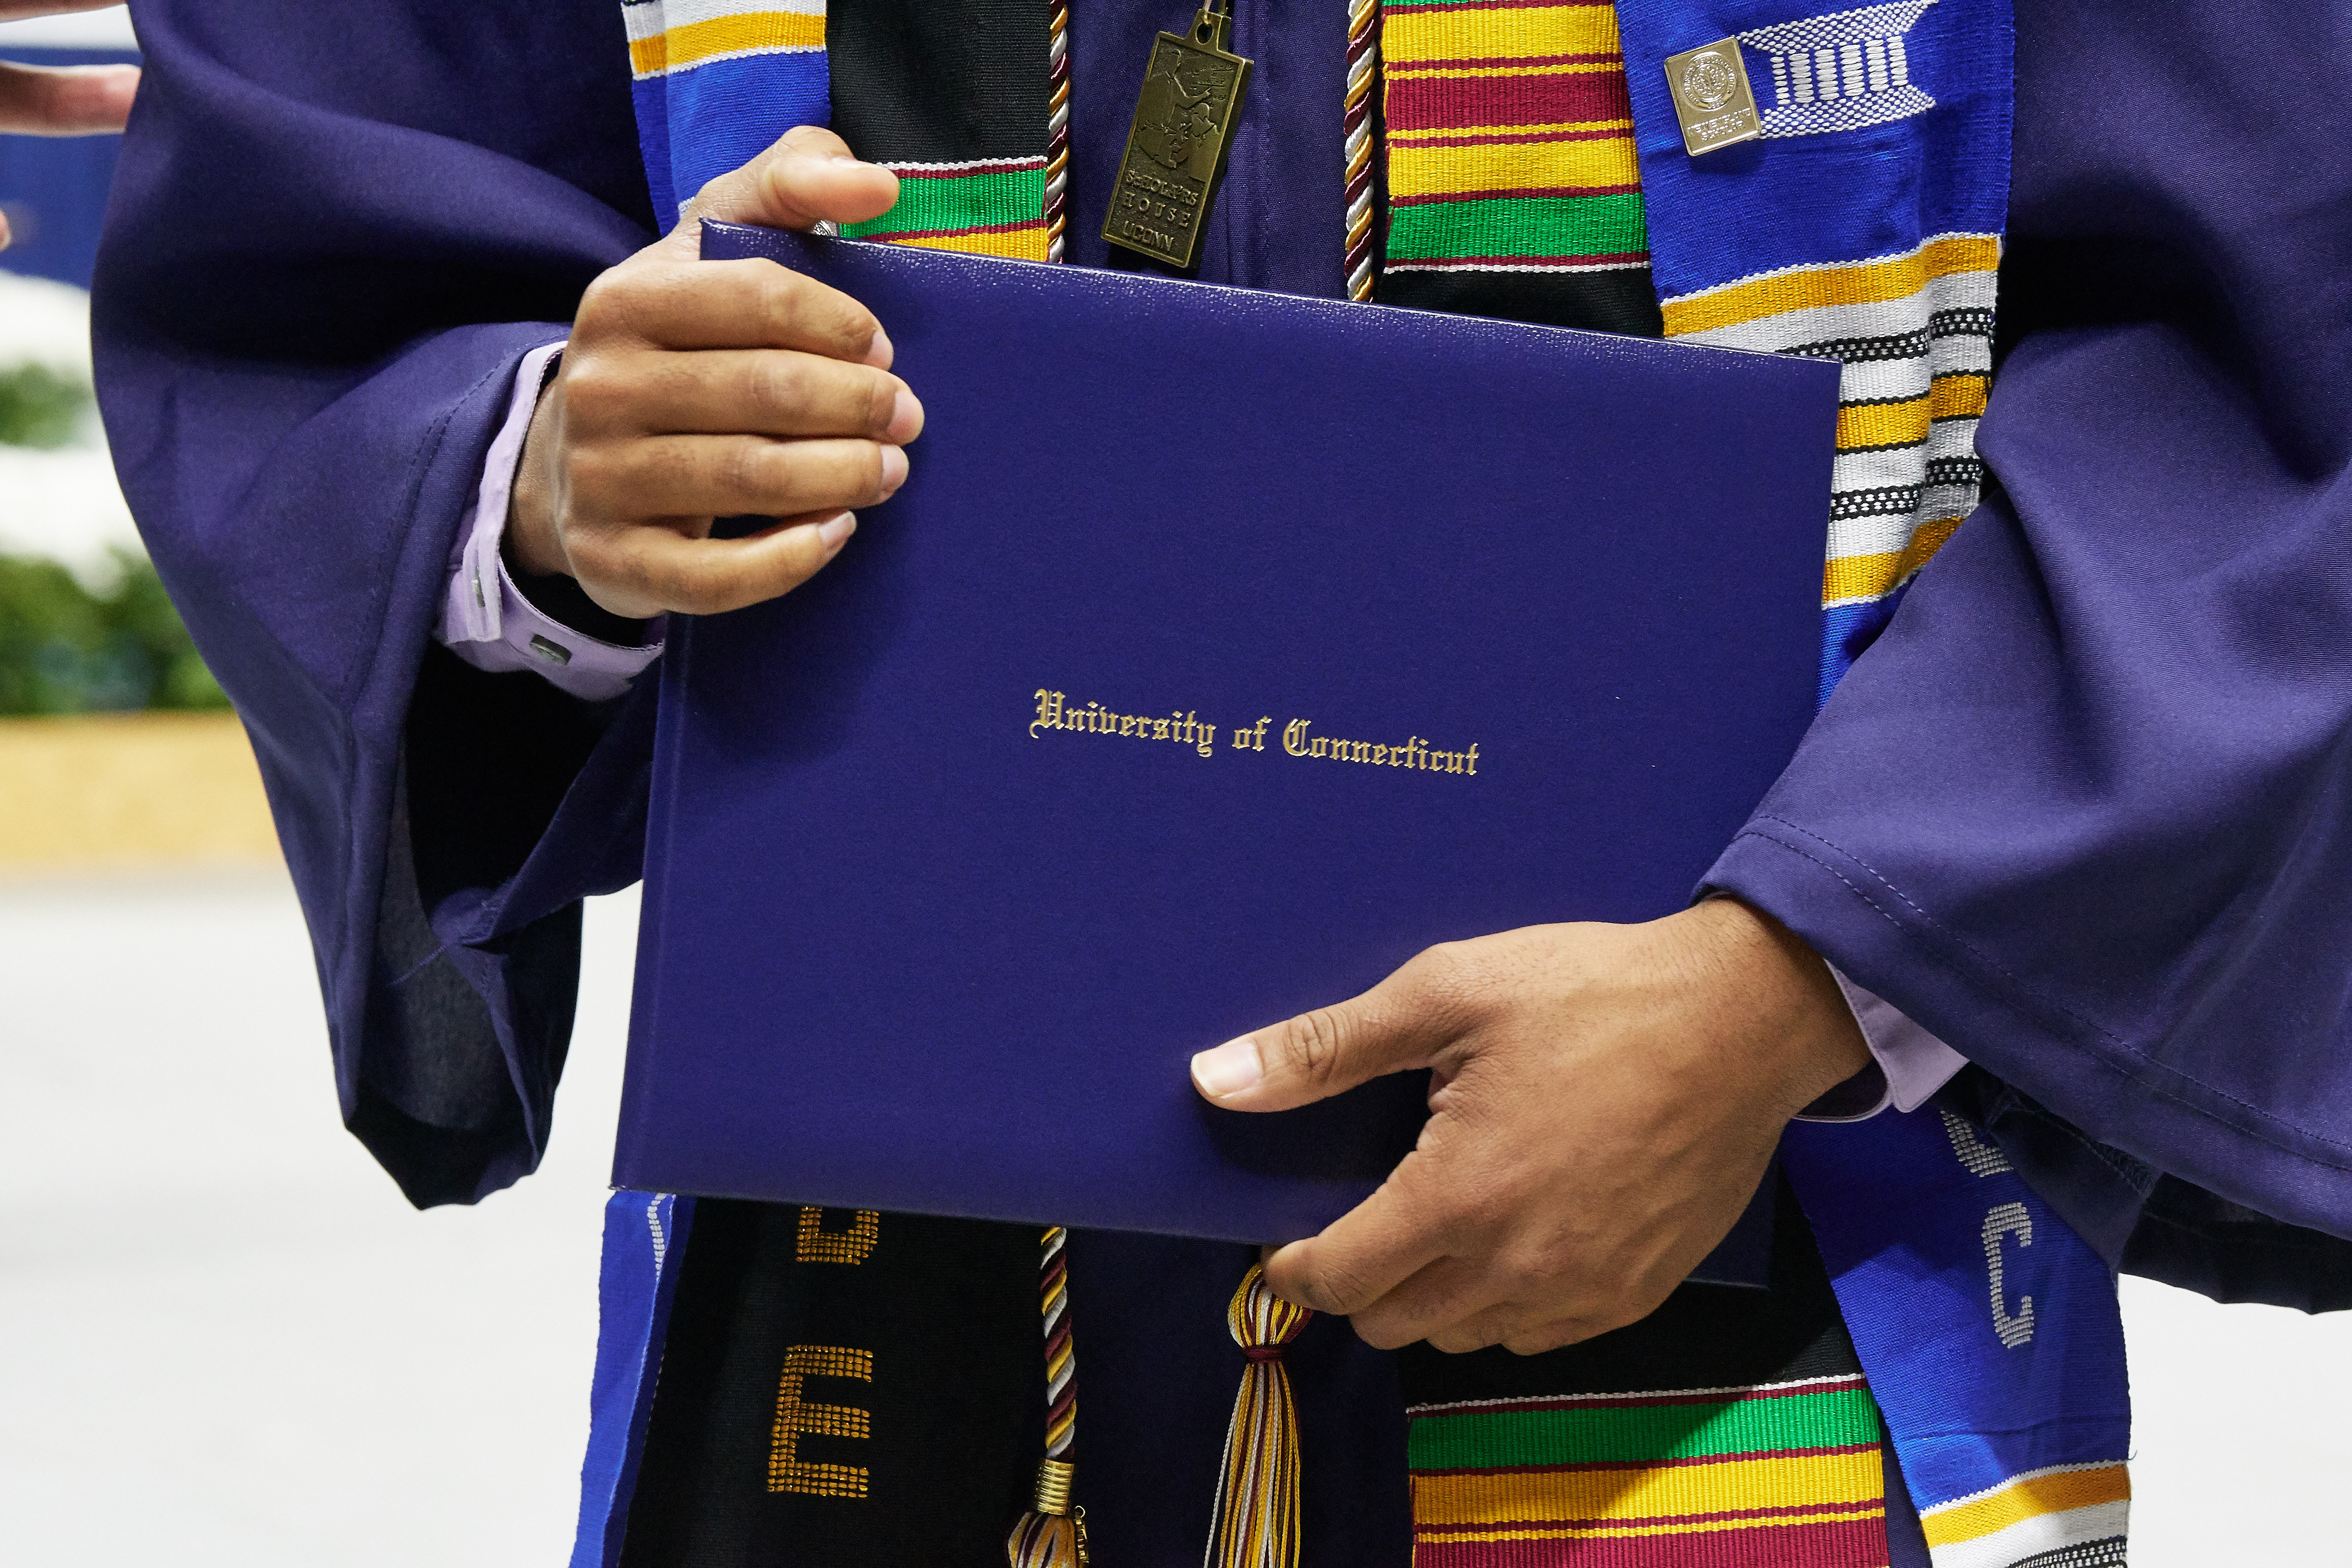 A degree candidate holds a diploma case during the School of Engineering Commencement ceremony at Gampel Pavilion on May 5, 2018. (Peter Morenus/UConn Photo)